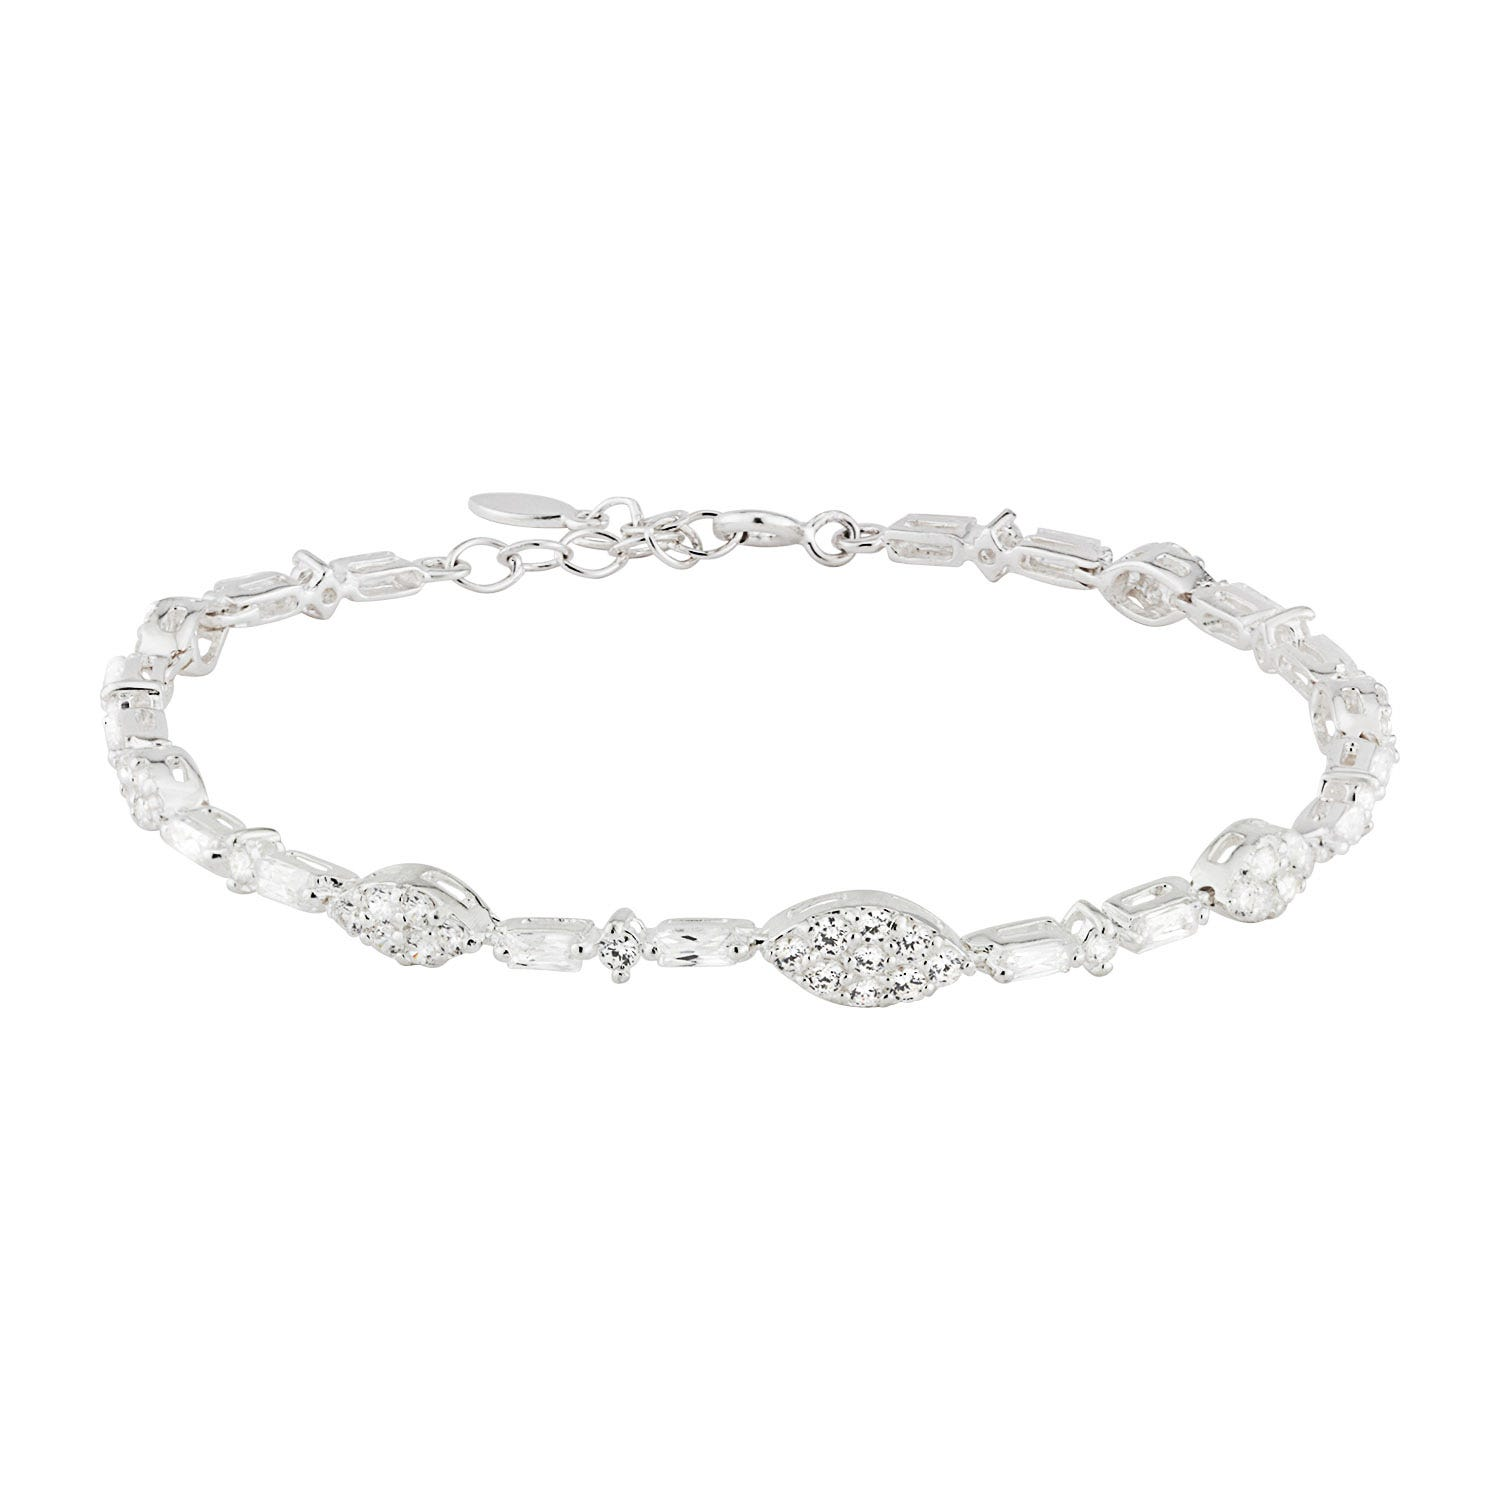 Sterling Silver and Cubic Zirconia Bracelet